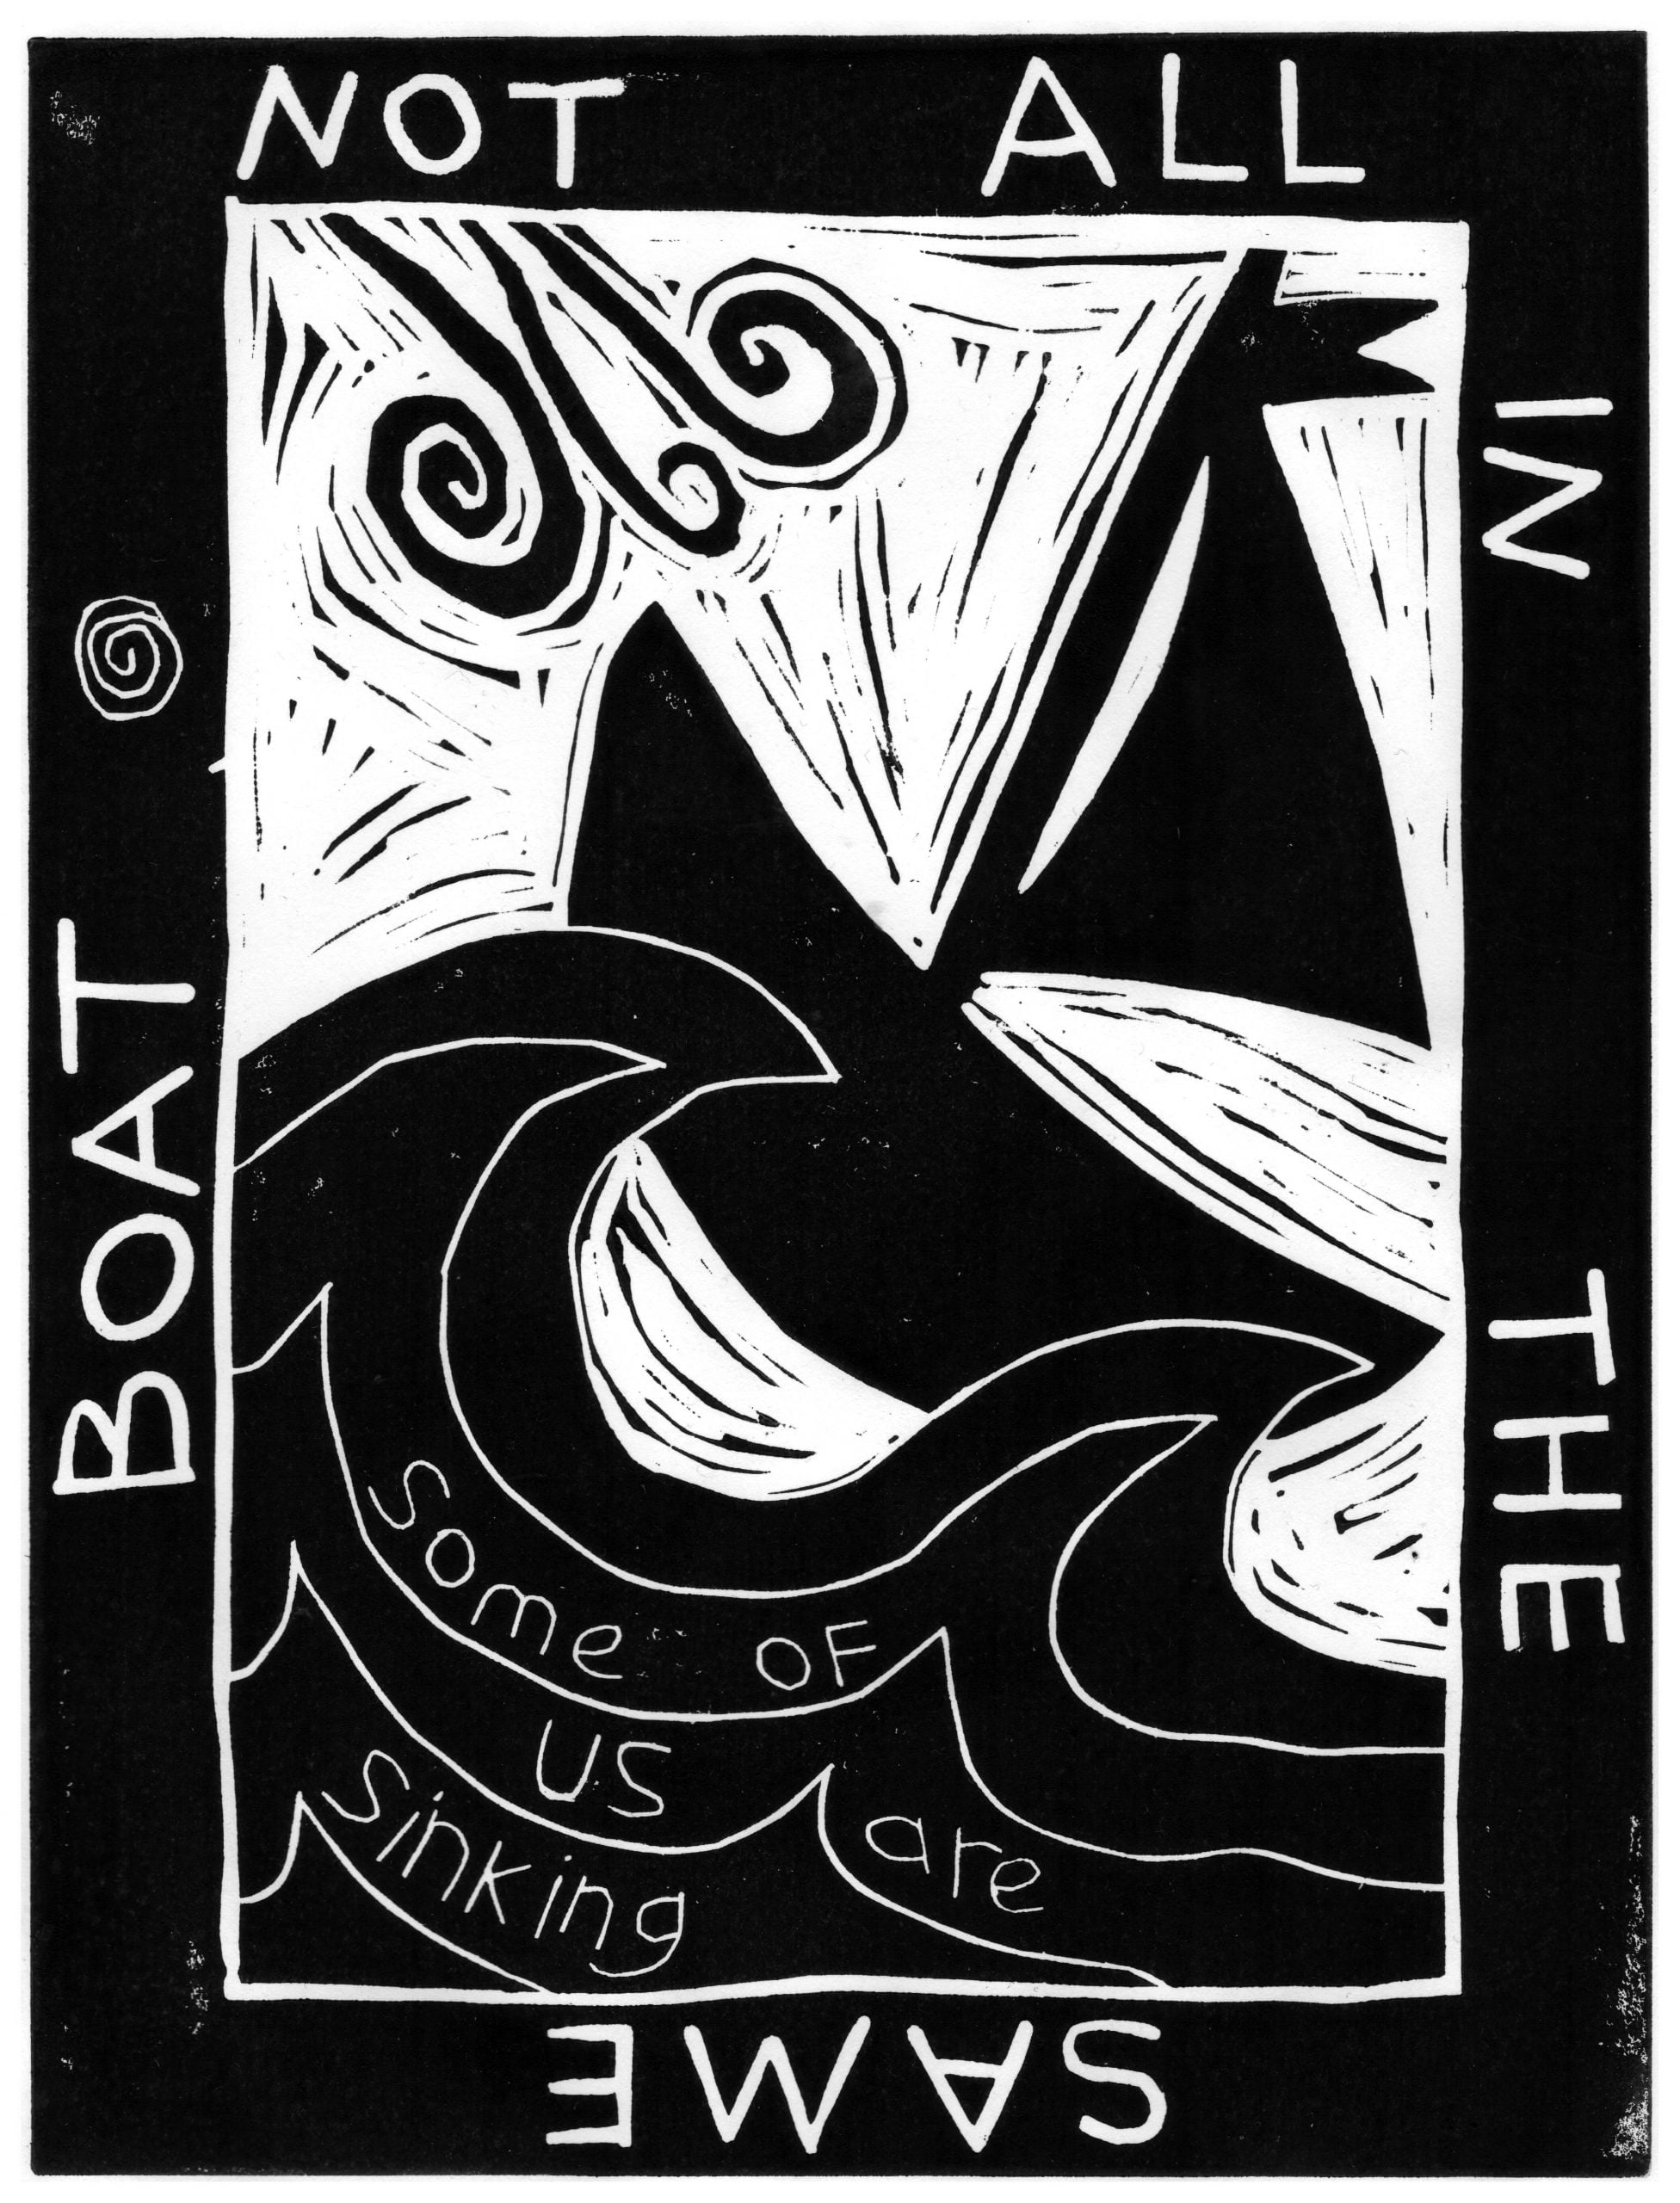 """A black and white linocut print in portrait format has a thick black border containing the words clockwise around the edge: """"NOT ALL IN THE SAME BOAT"""". Inside the border is a large wave appearing from the bottom left that touches a small boat in the top right corner. There is text in the wave that reads: """"Some of us are sinking"""". A wind motif sits top left and reaches towards the boat. In the space between these shapes are small black lines and marks left by the lino cutting process."""